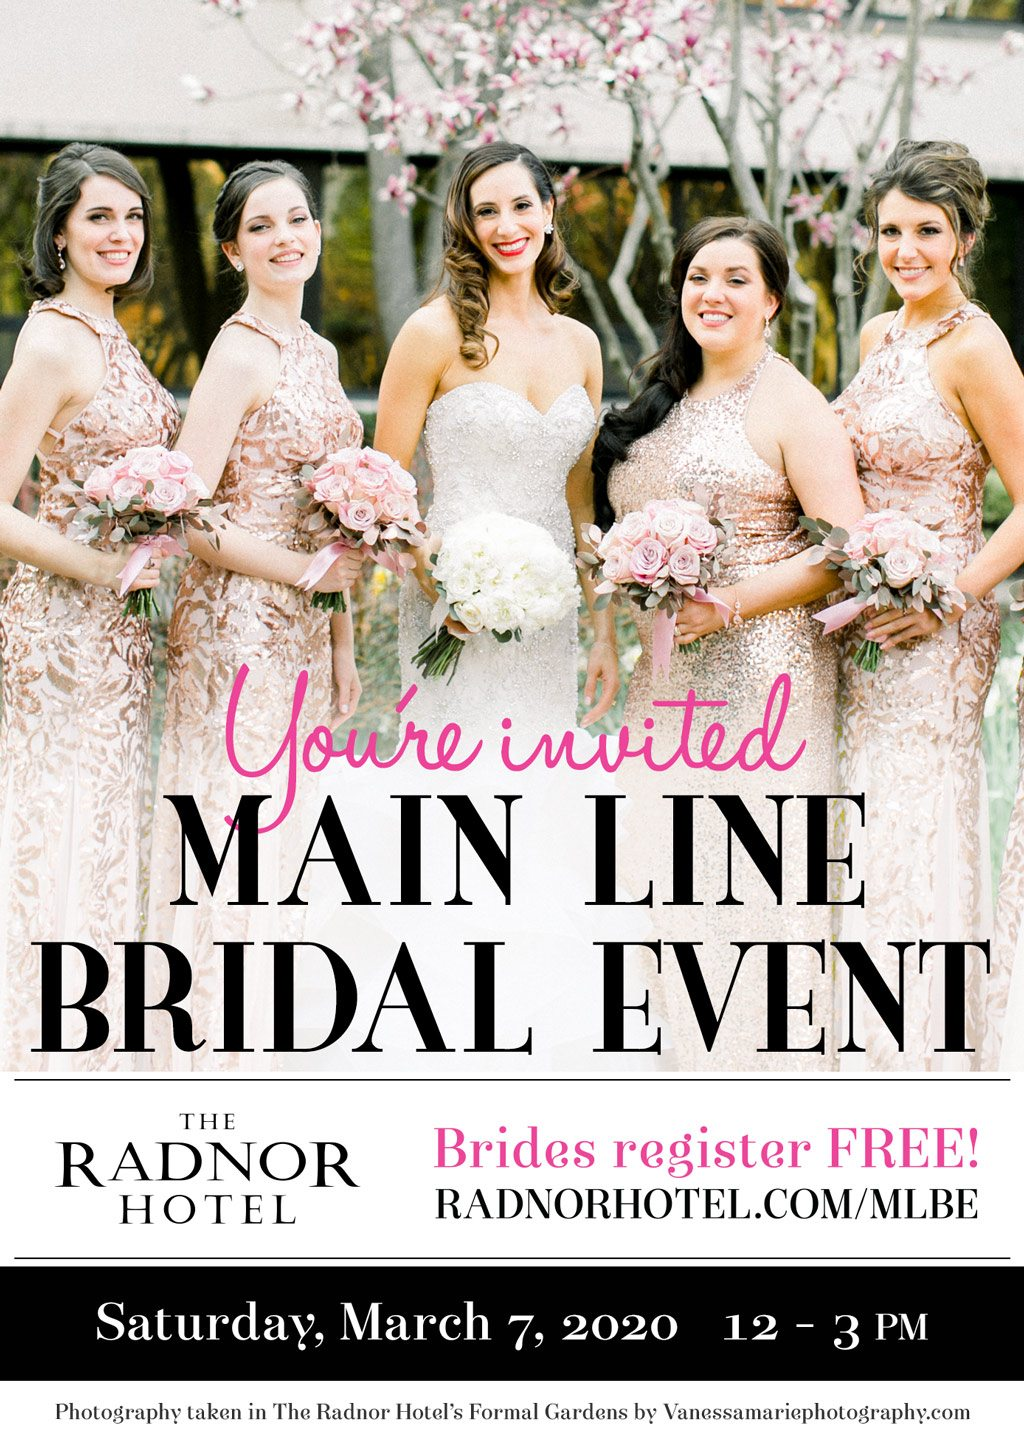 Main Line Bridal Event at The Radnor Hotel 2020